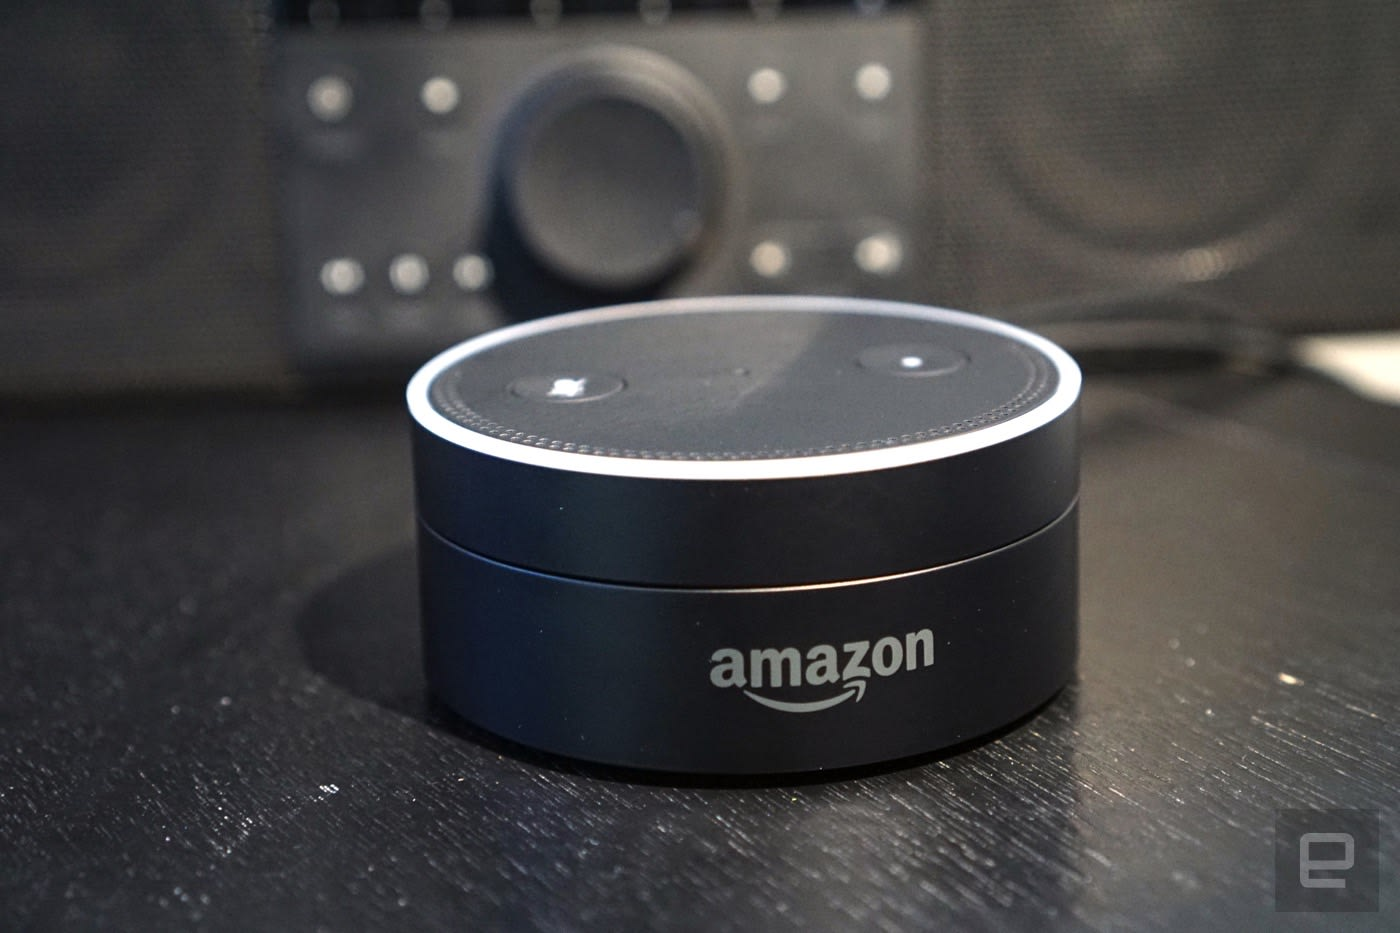 amazon 39 s echo dot is a great way to bring alexa to more rooms. Black Bedroom Furniture Sets. Home Design Ideas